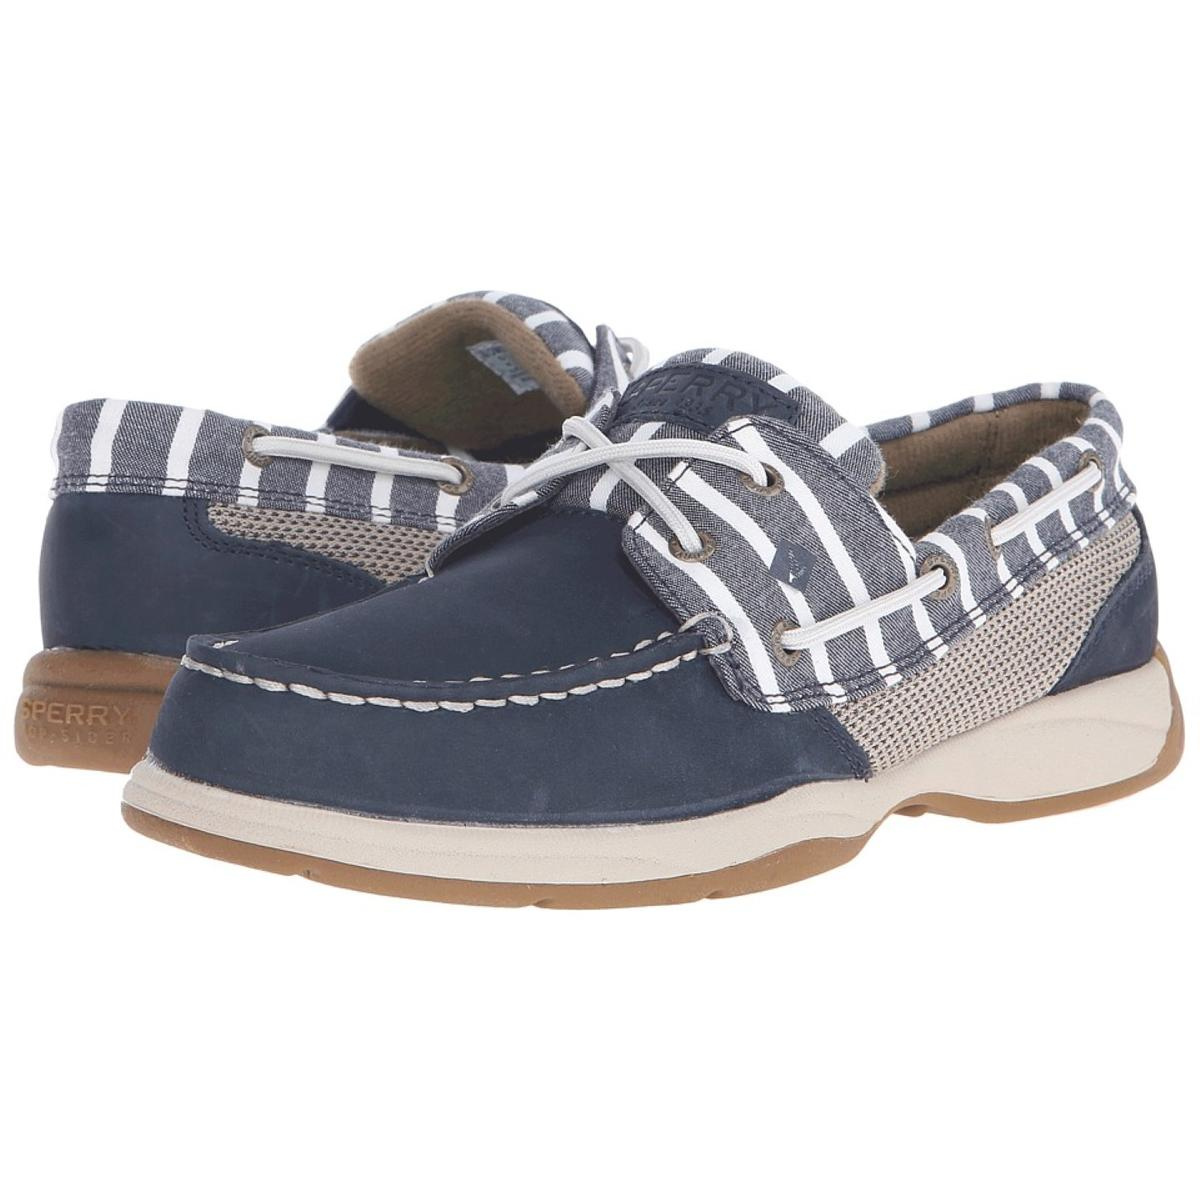 Sperry Top-Sider Intrepid Stripe- Women's Womens Navy Boat Shoes